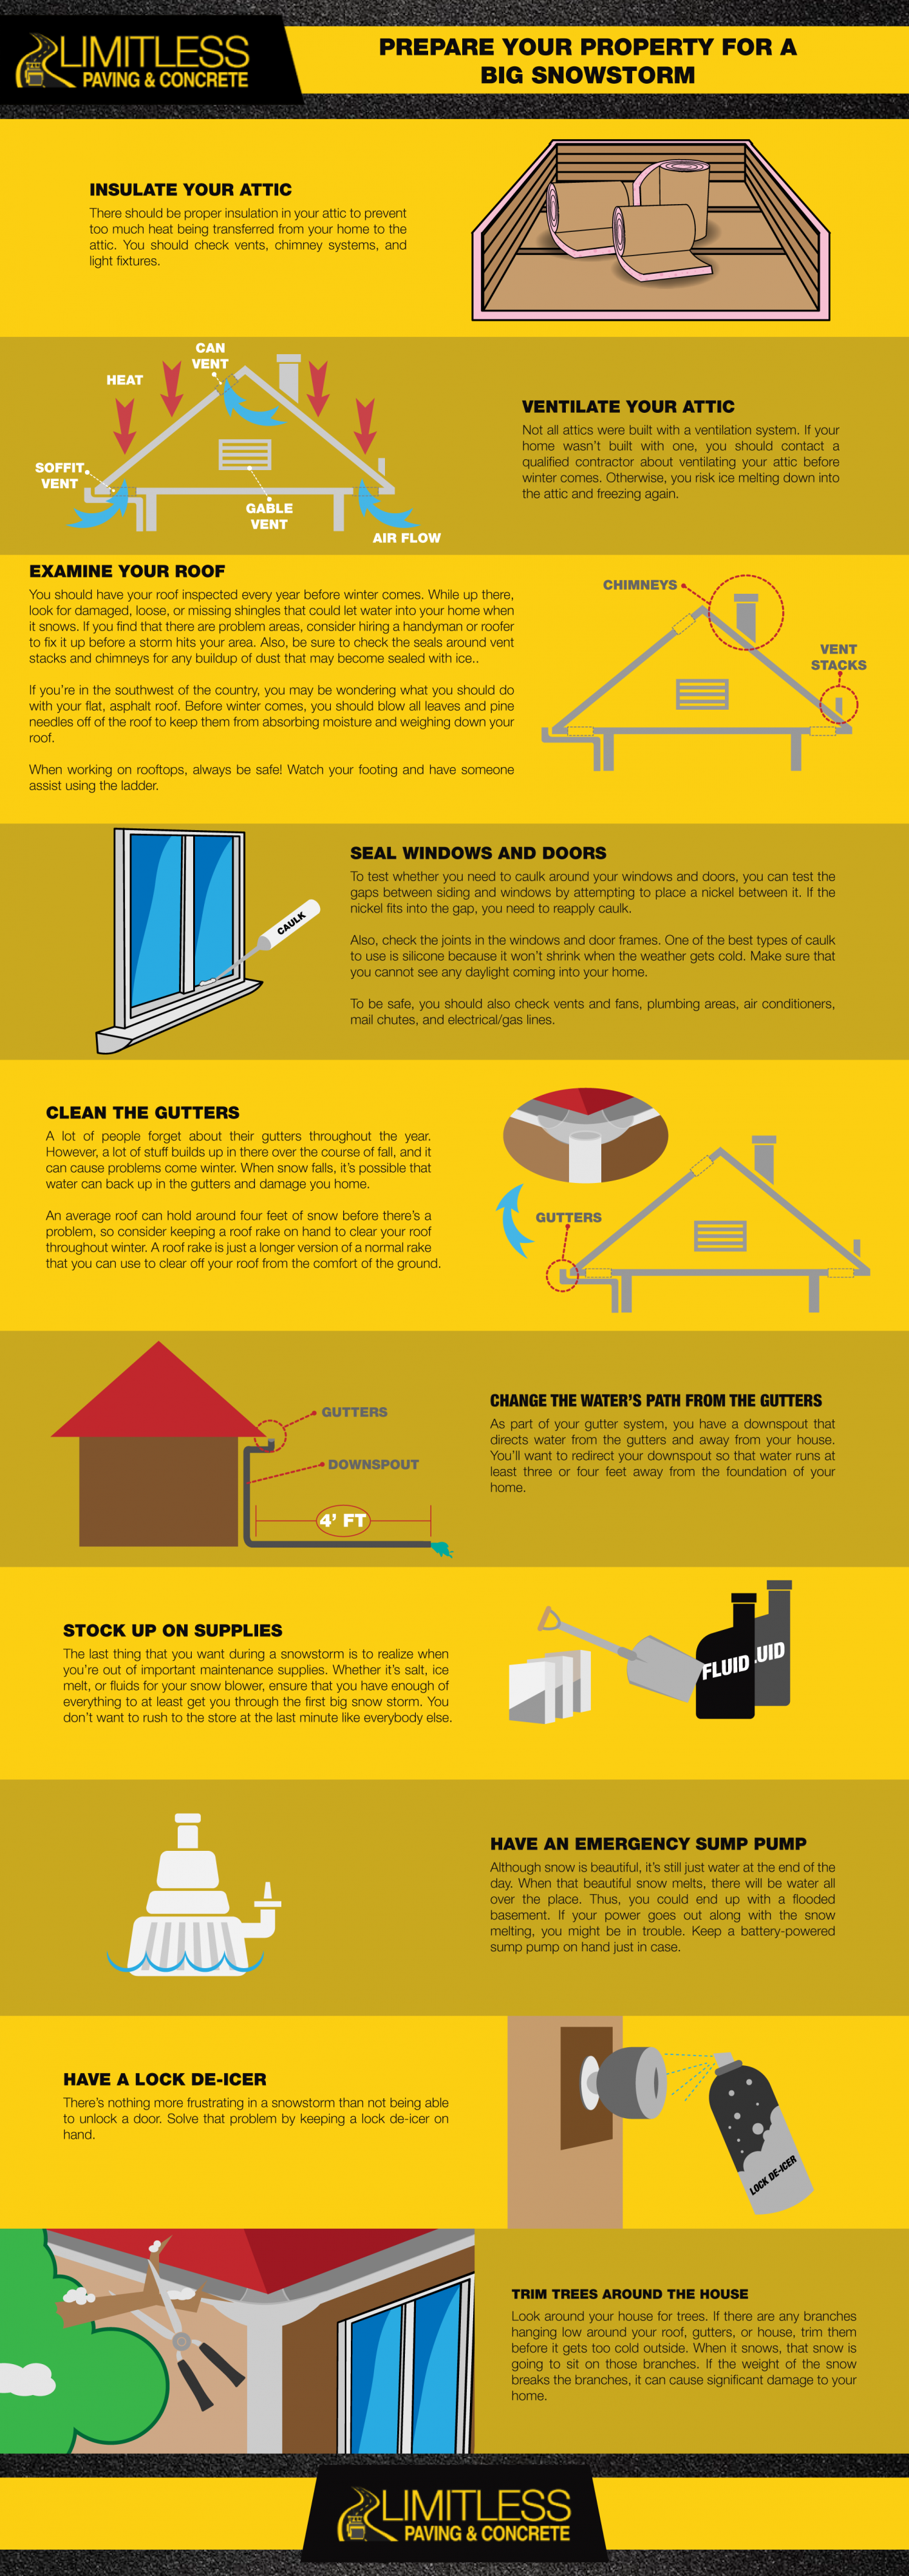 prepare property for a snowstorm infographic